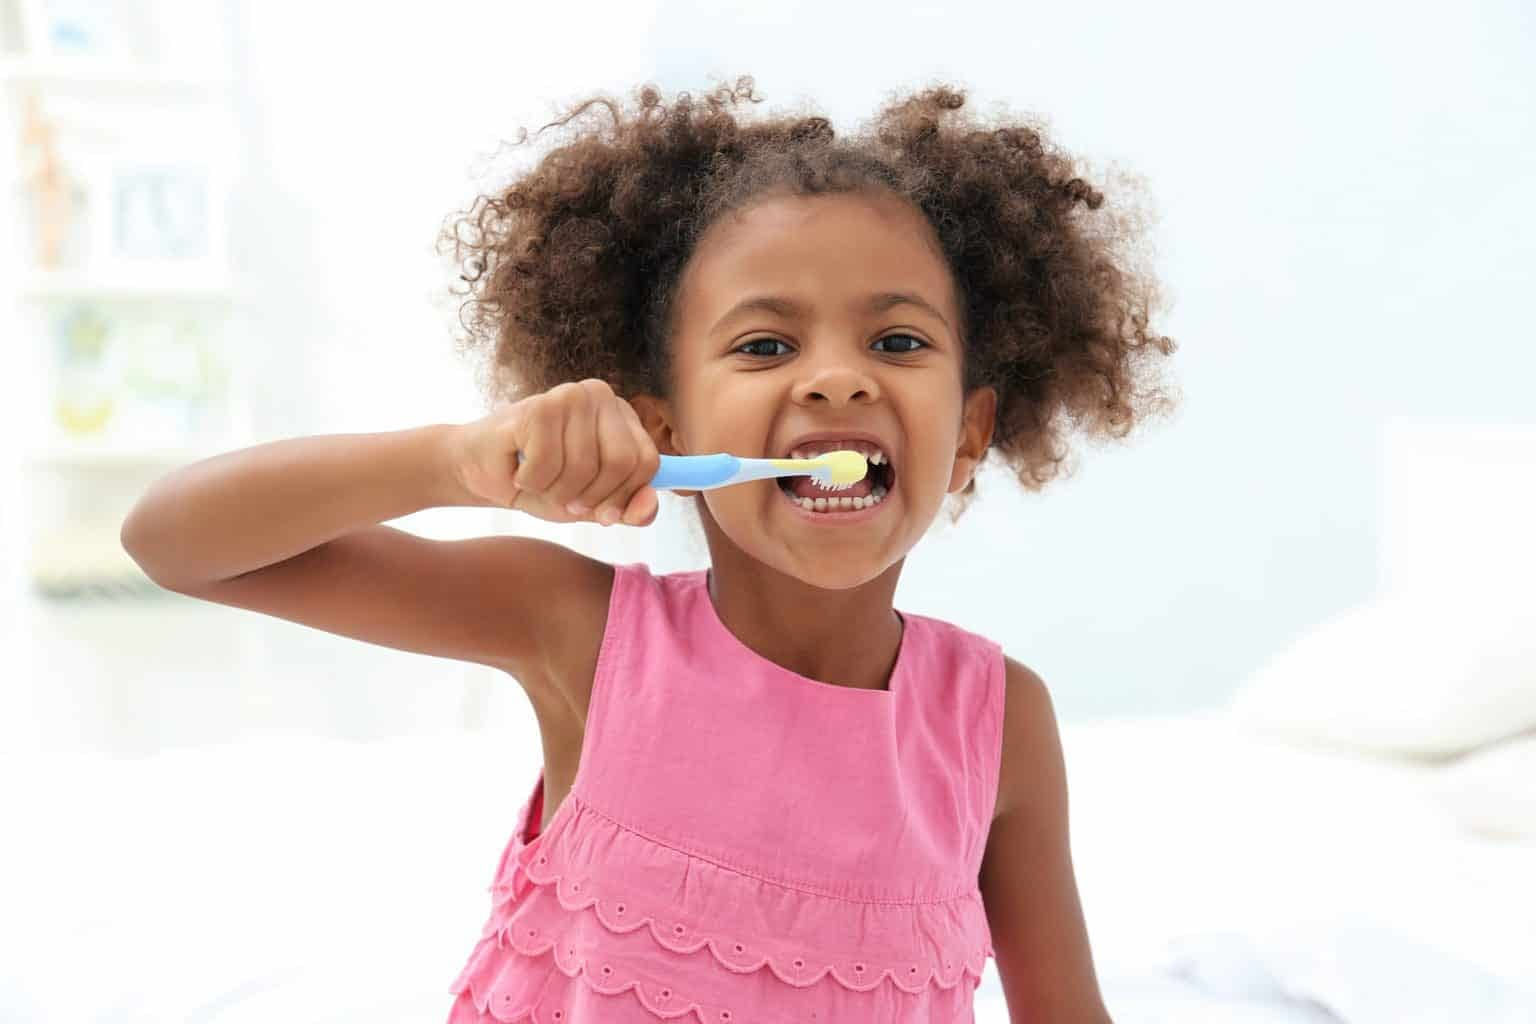 child brushing teeth with fluoride toothpaste